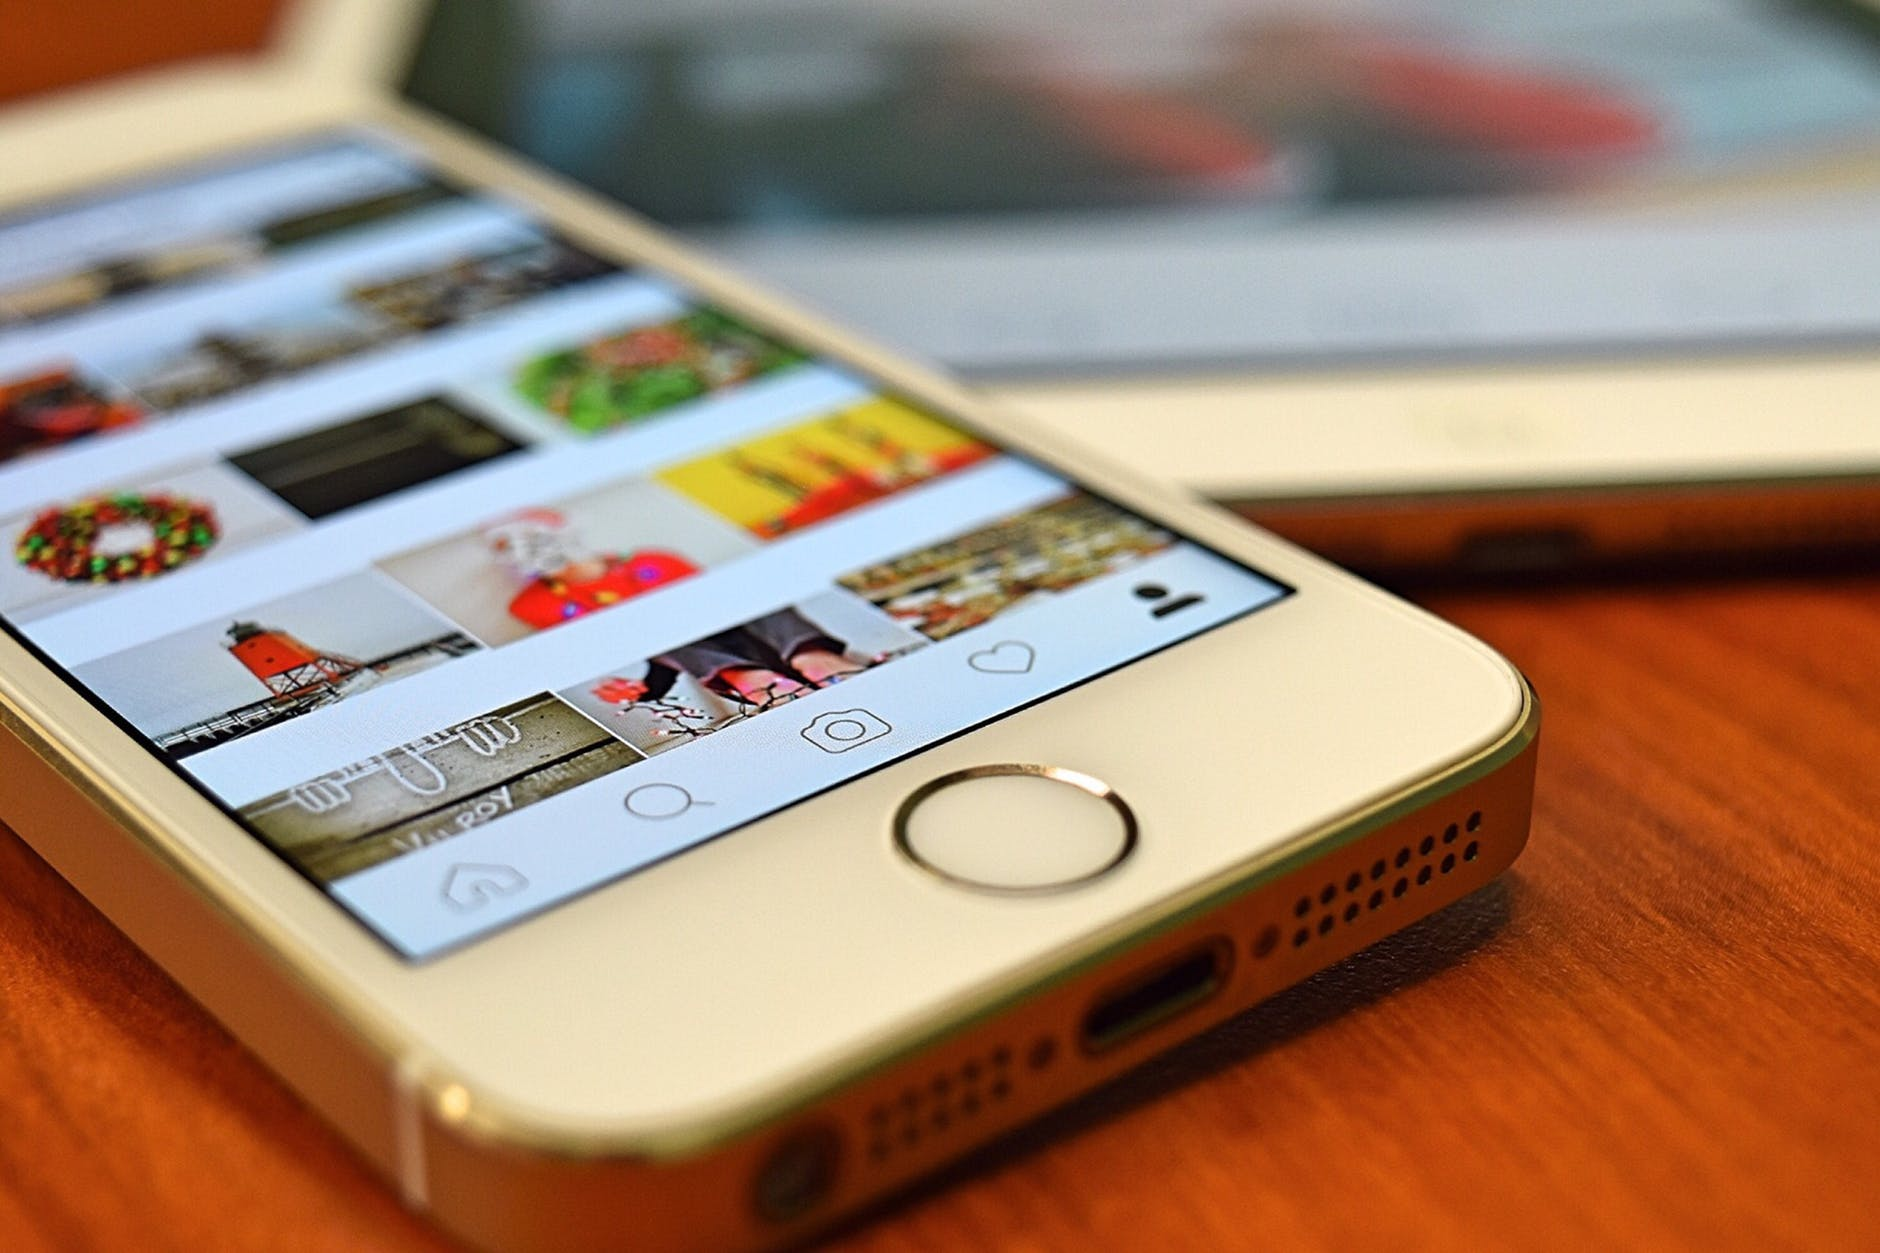 Instagram For Kids: Parental Controls And How To Stay Safe